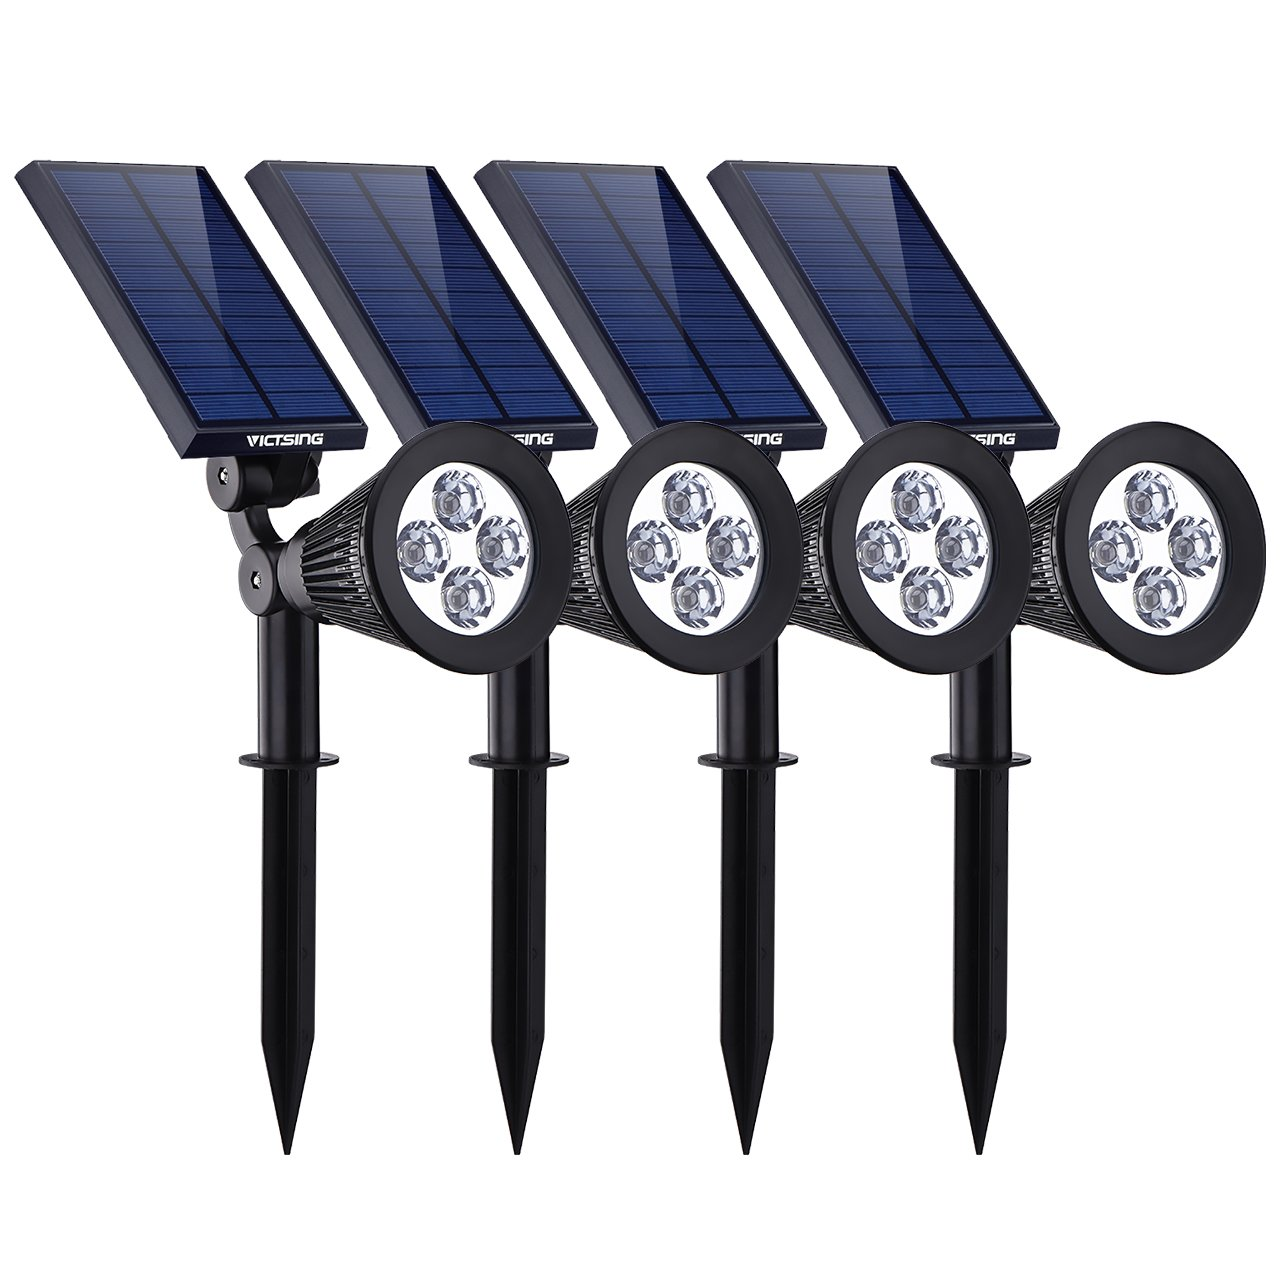 VicTsing 4 Pack Solar Spotlights,The Third Generation 2-in-1 Waterproof Adjustable 4 LED Wall / Landscape Solar Lights with Automatic On/Off Sensor for Driveway, Yard, Lawn, Pathway, Garden by VicTsing